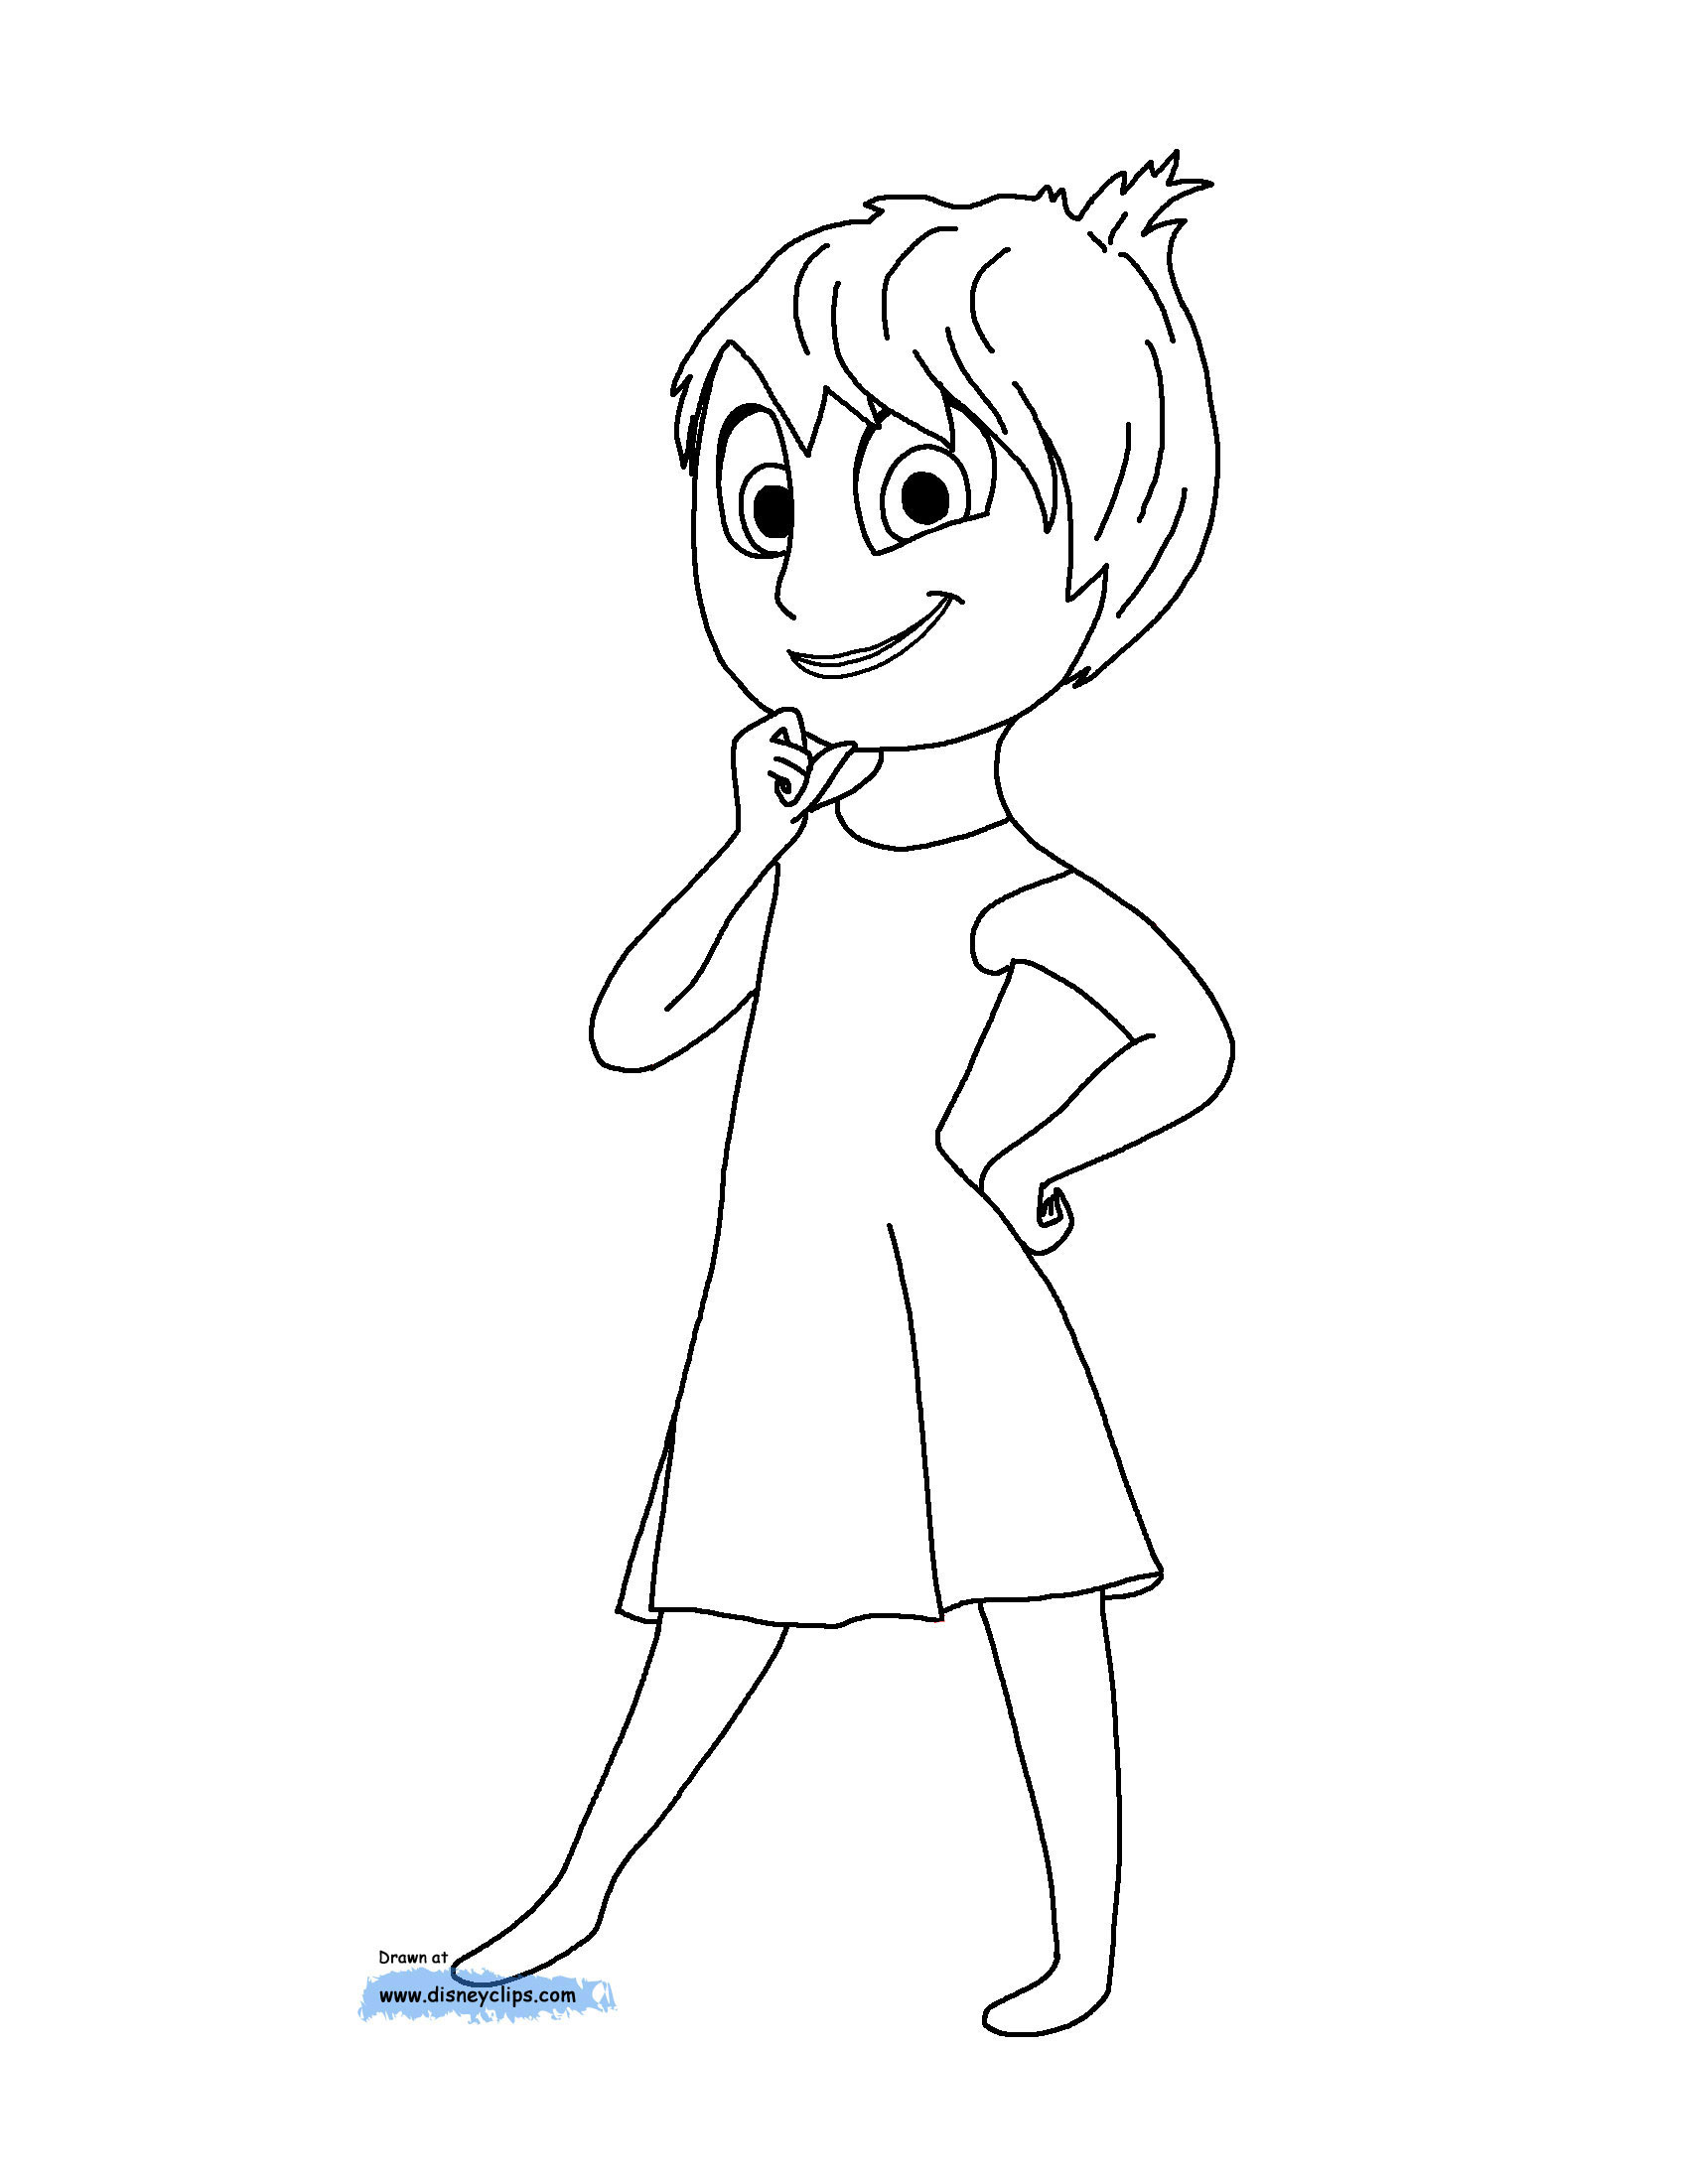 Disney's Inside Out Movie & Coloring Pages - Create. Play ...